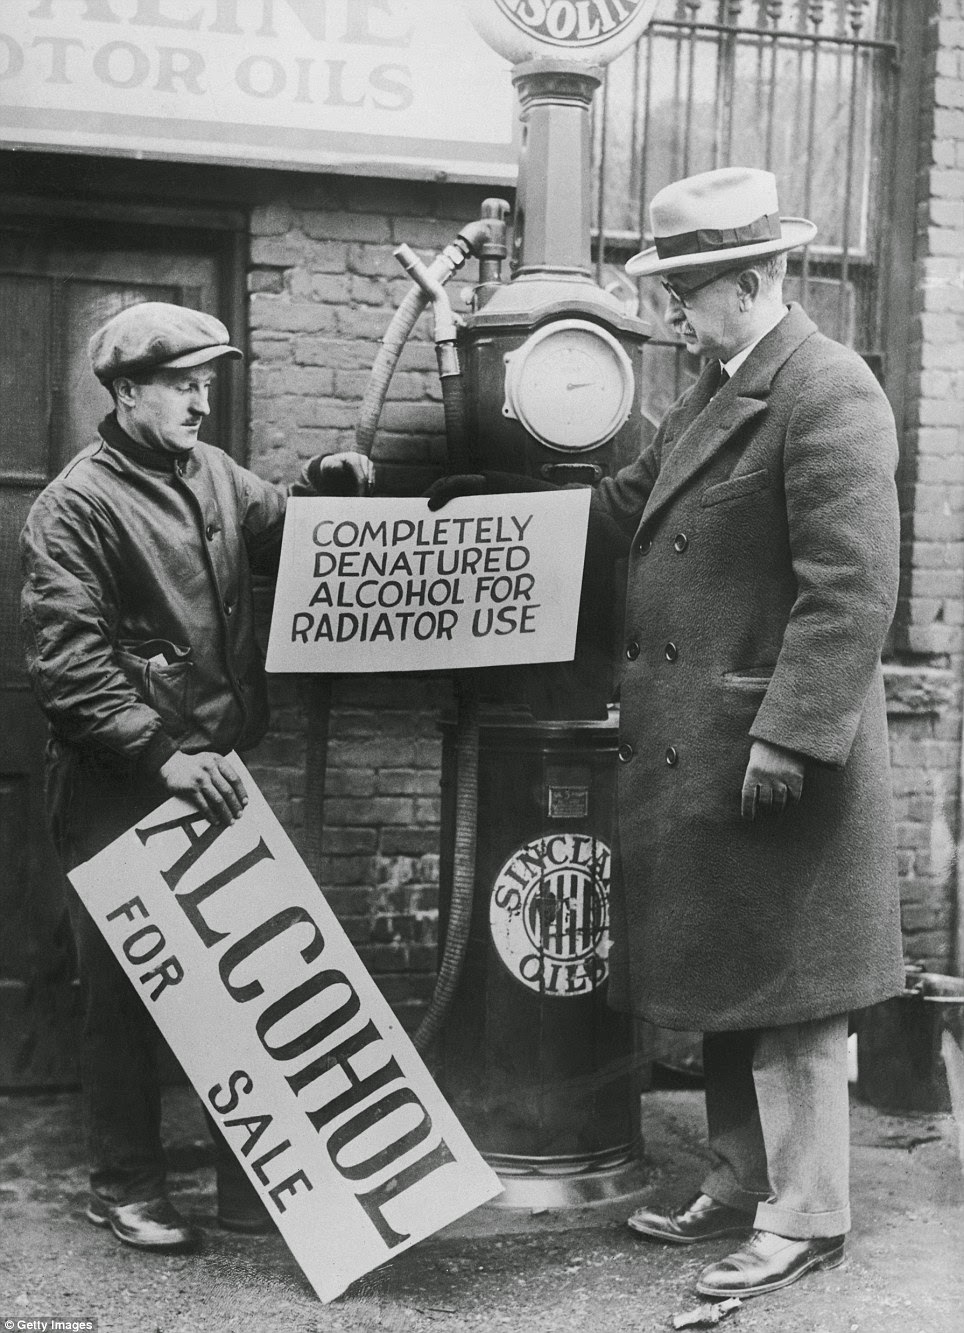 outcomes of alcohol prohibition in the united states It's interesting to compare the effects of early 20th century prohibition against  those of 2012 america's first experiment with alcohol regulation.